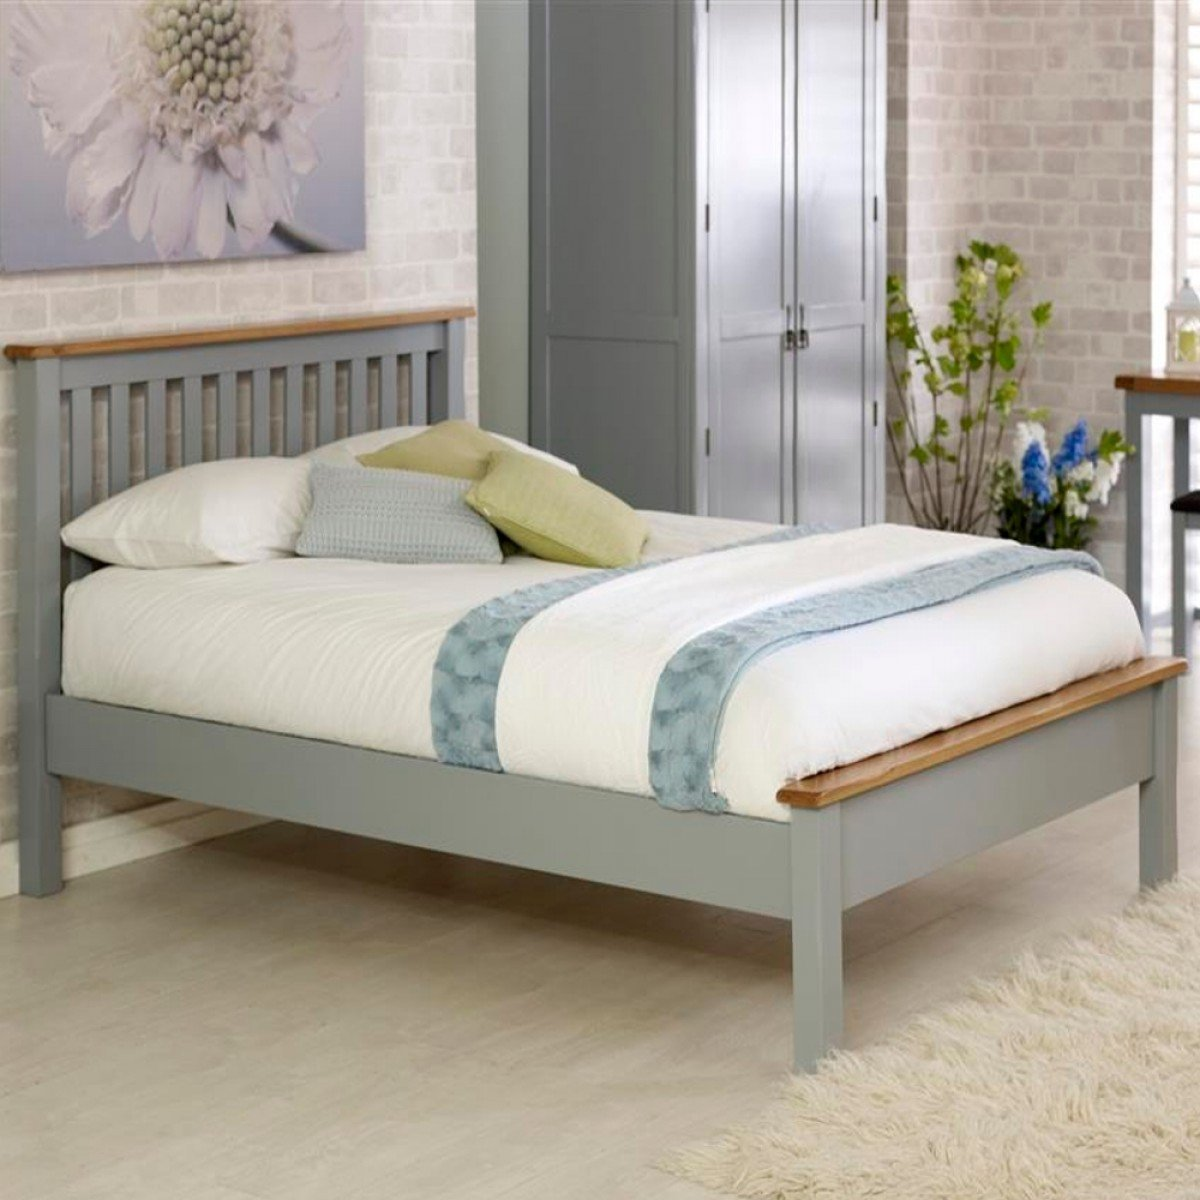 New Hampshire Grey and Oak Low Foot End Wooden Bed